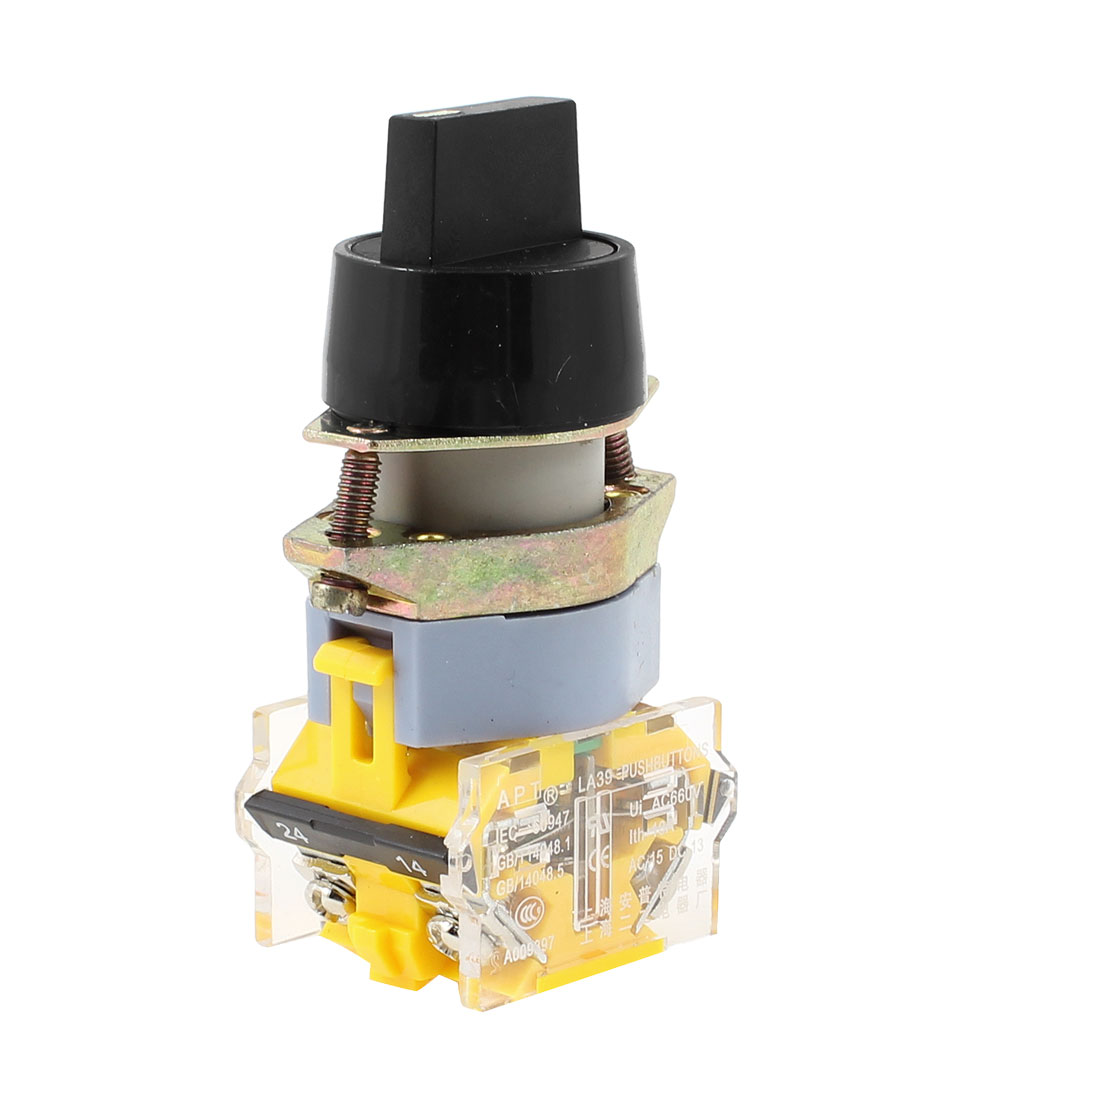 AC 660V 10A 4 Terminal 3-Position 1NO 1NC Latching Rotary Selector Switch